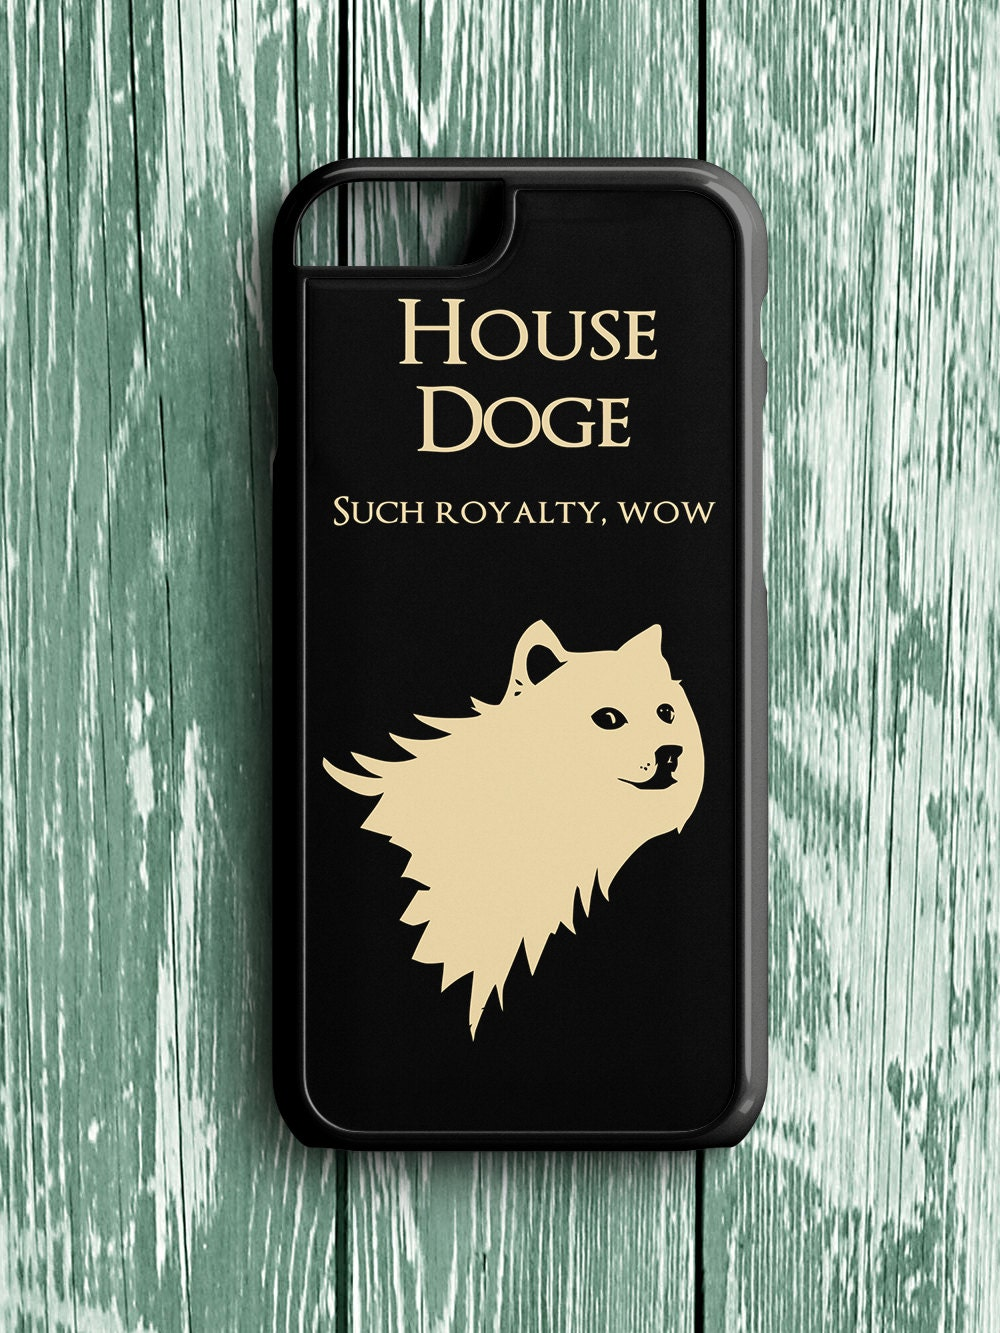 Case Design where can you design your own phone case : Doge iPhone 6 Case Game of Thrones iPhone 5s Case Doge Game